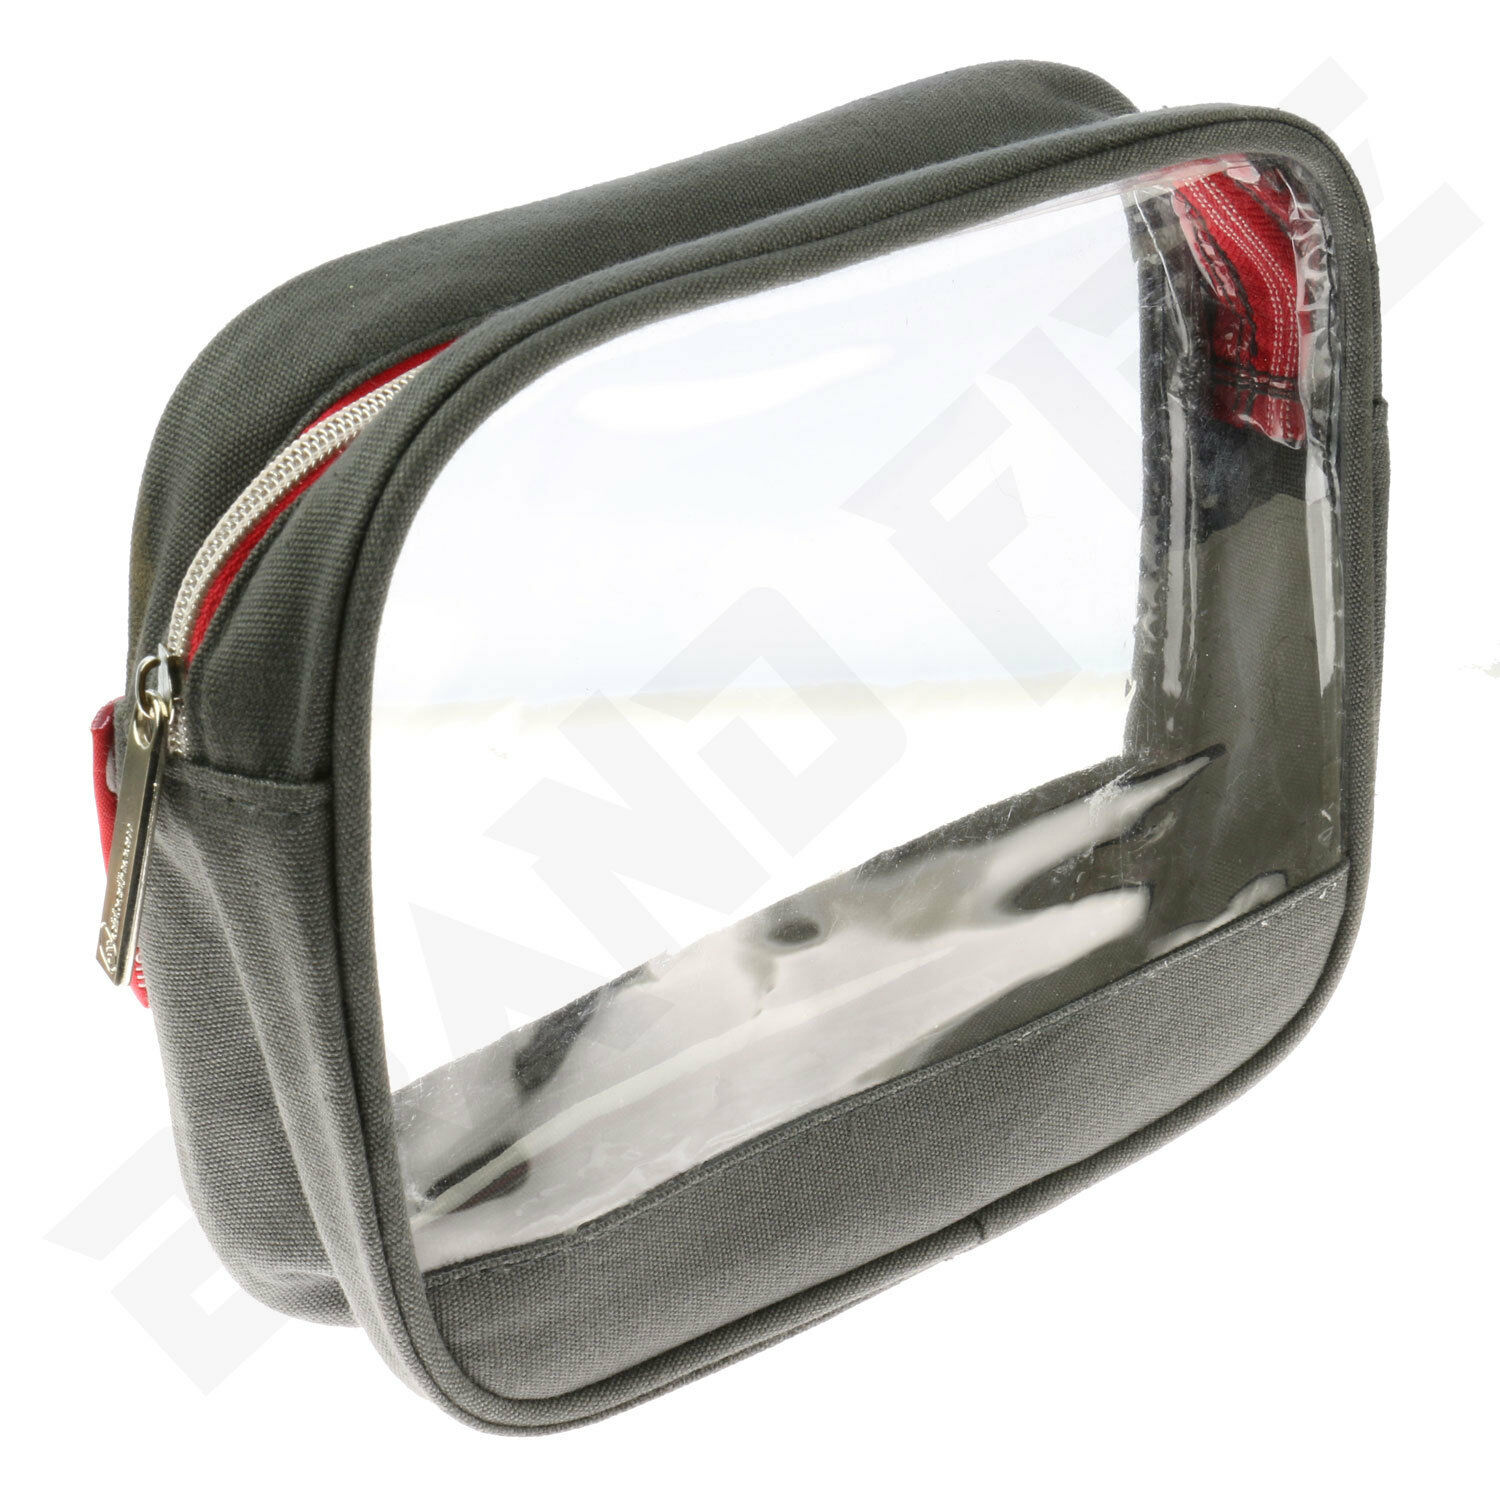 Clear Transparent Compact Wash Bag Toiletry Cosmetics Case Travel Pouch Makeup Ebay